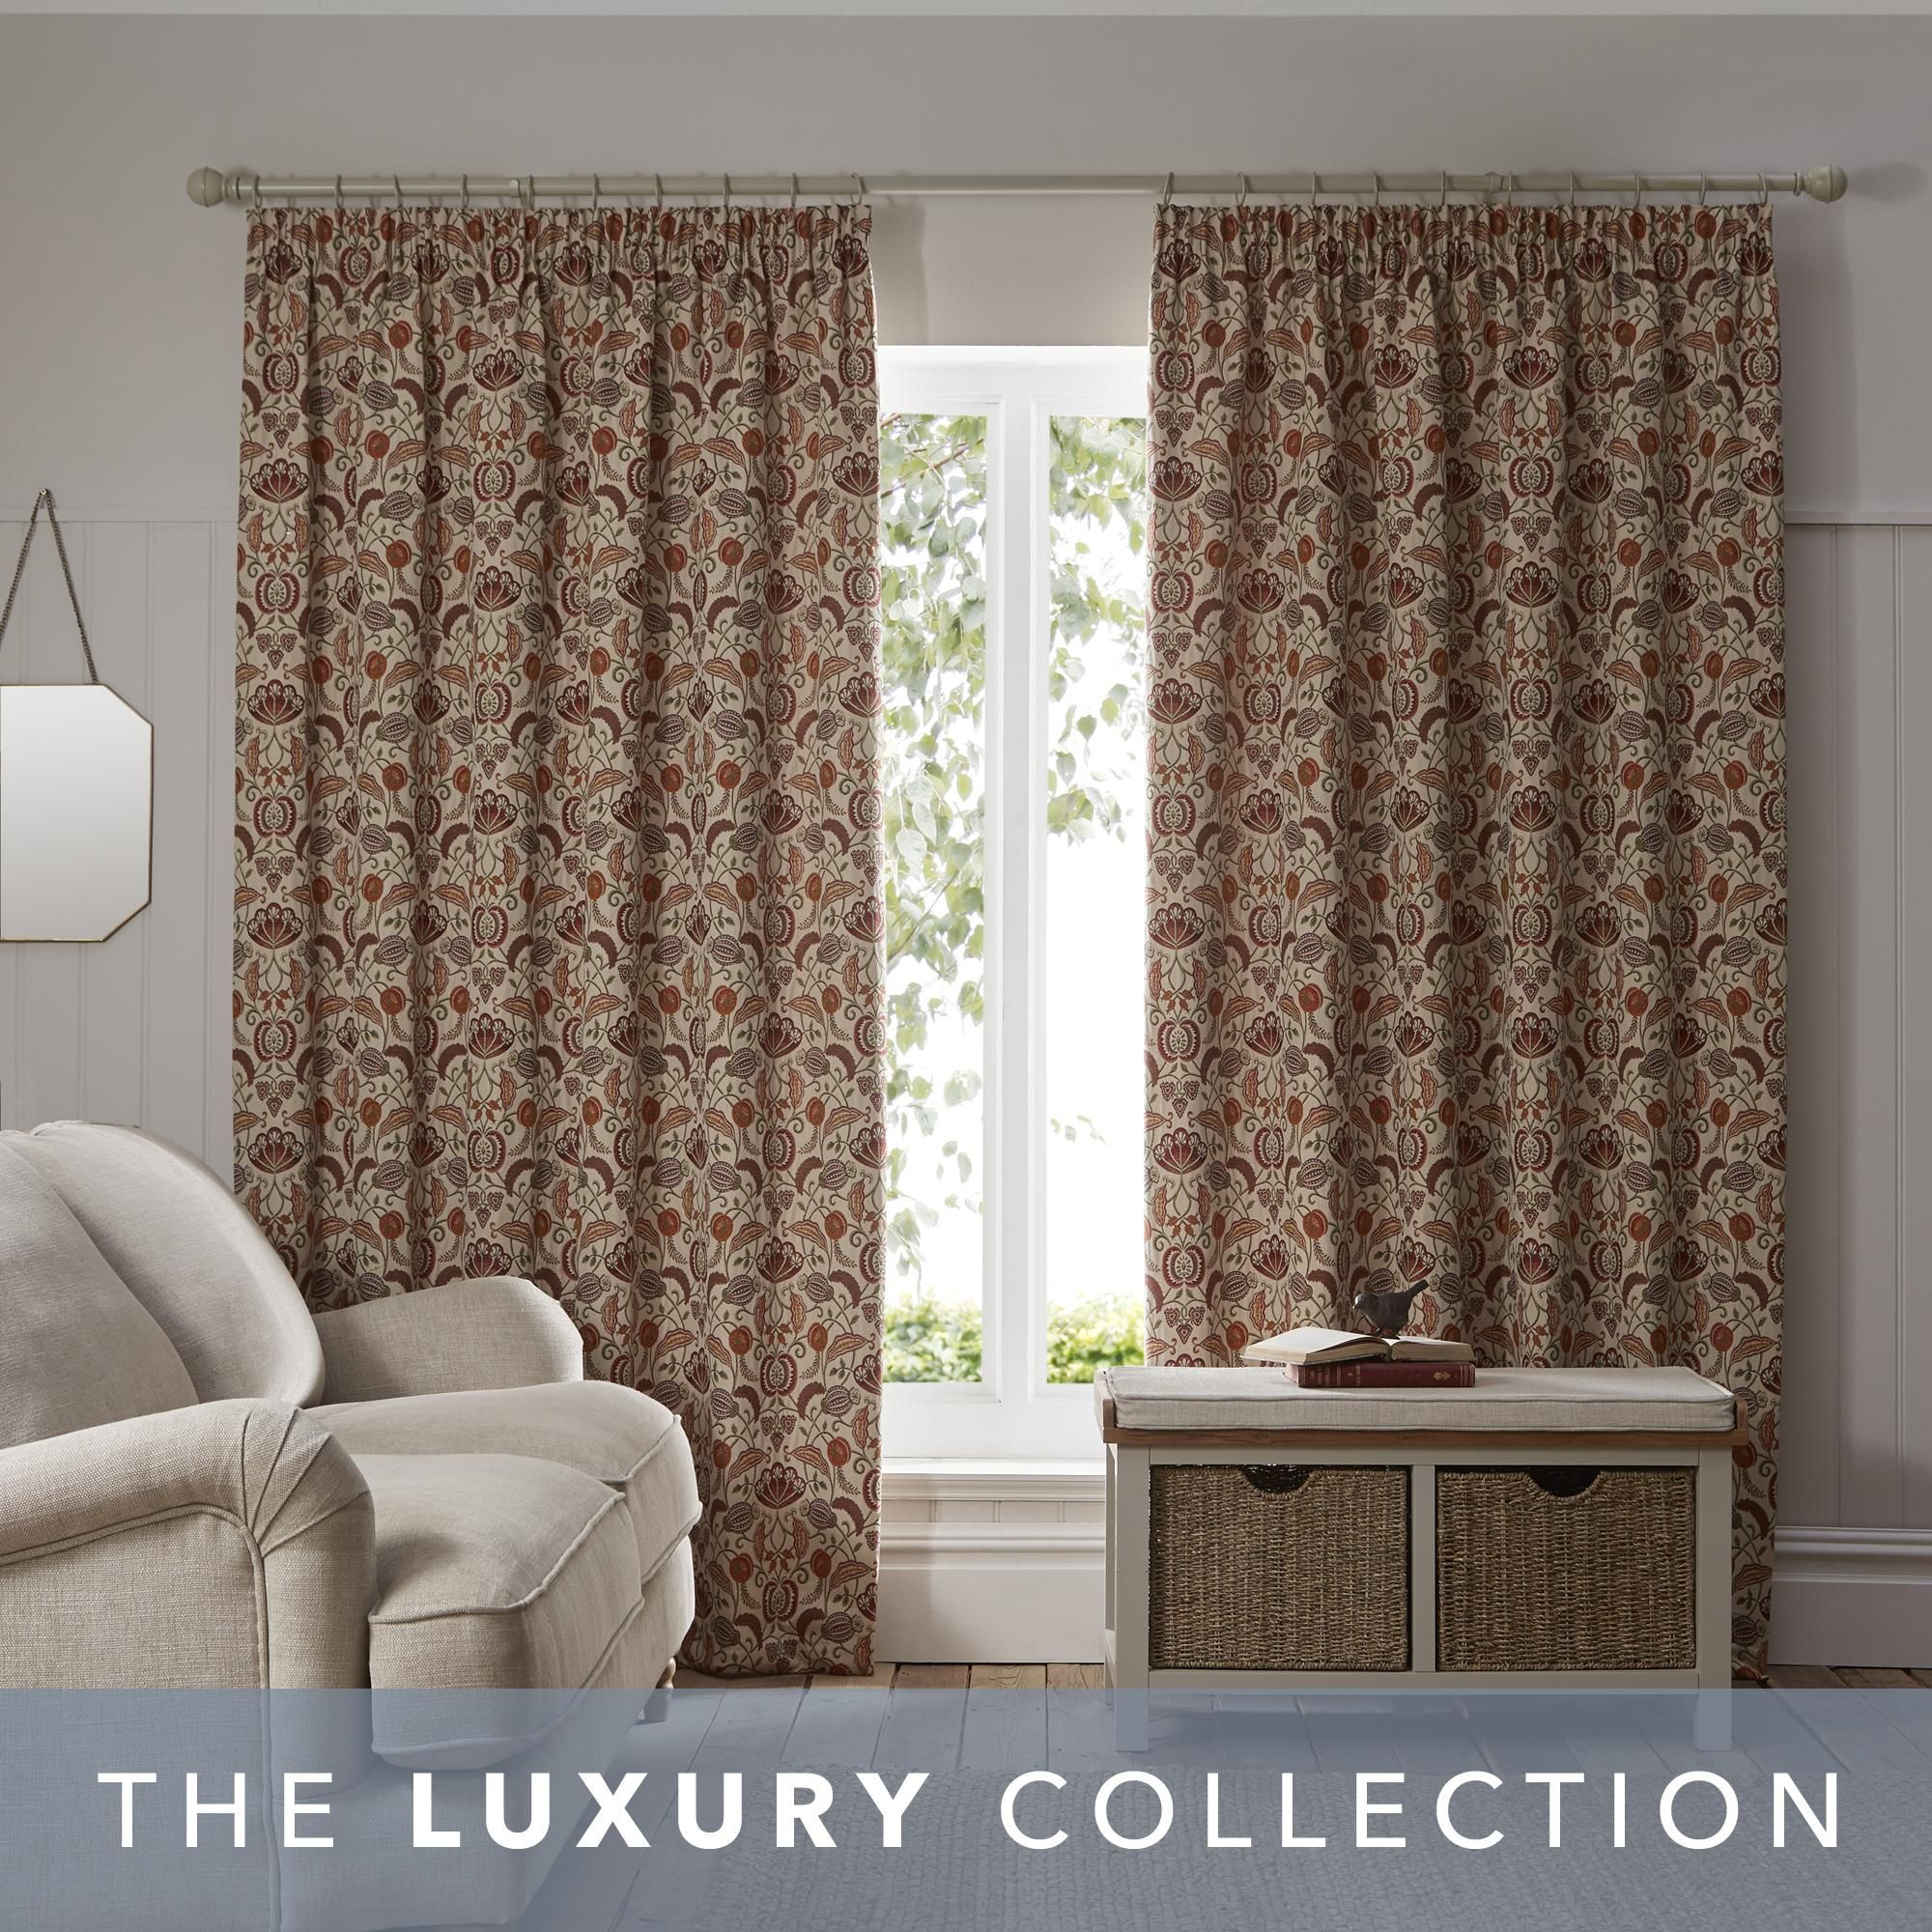 Chatsworth Autumnal Pencil Pleat Curtains In 2020 Pleated Curtains Curtains Pencil Pleat